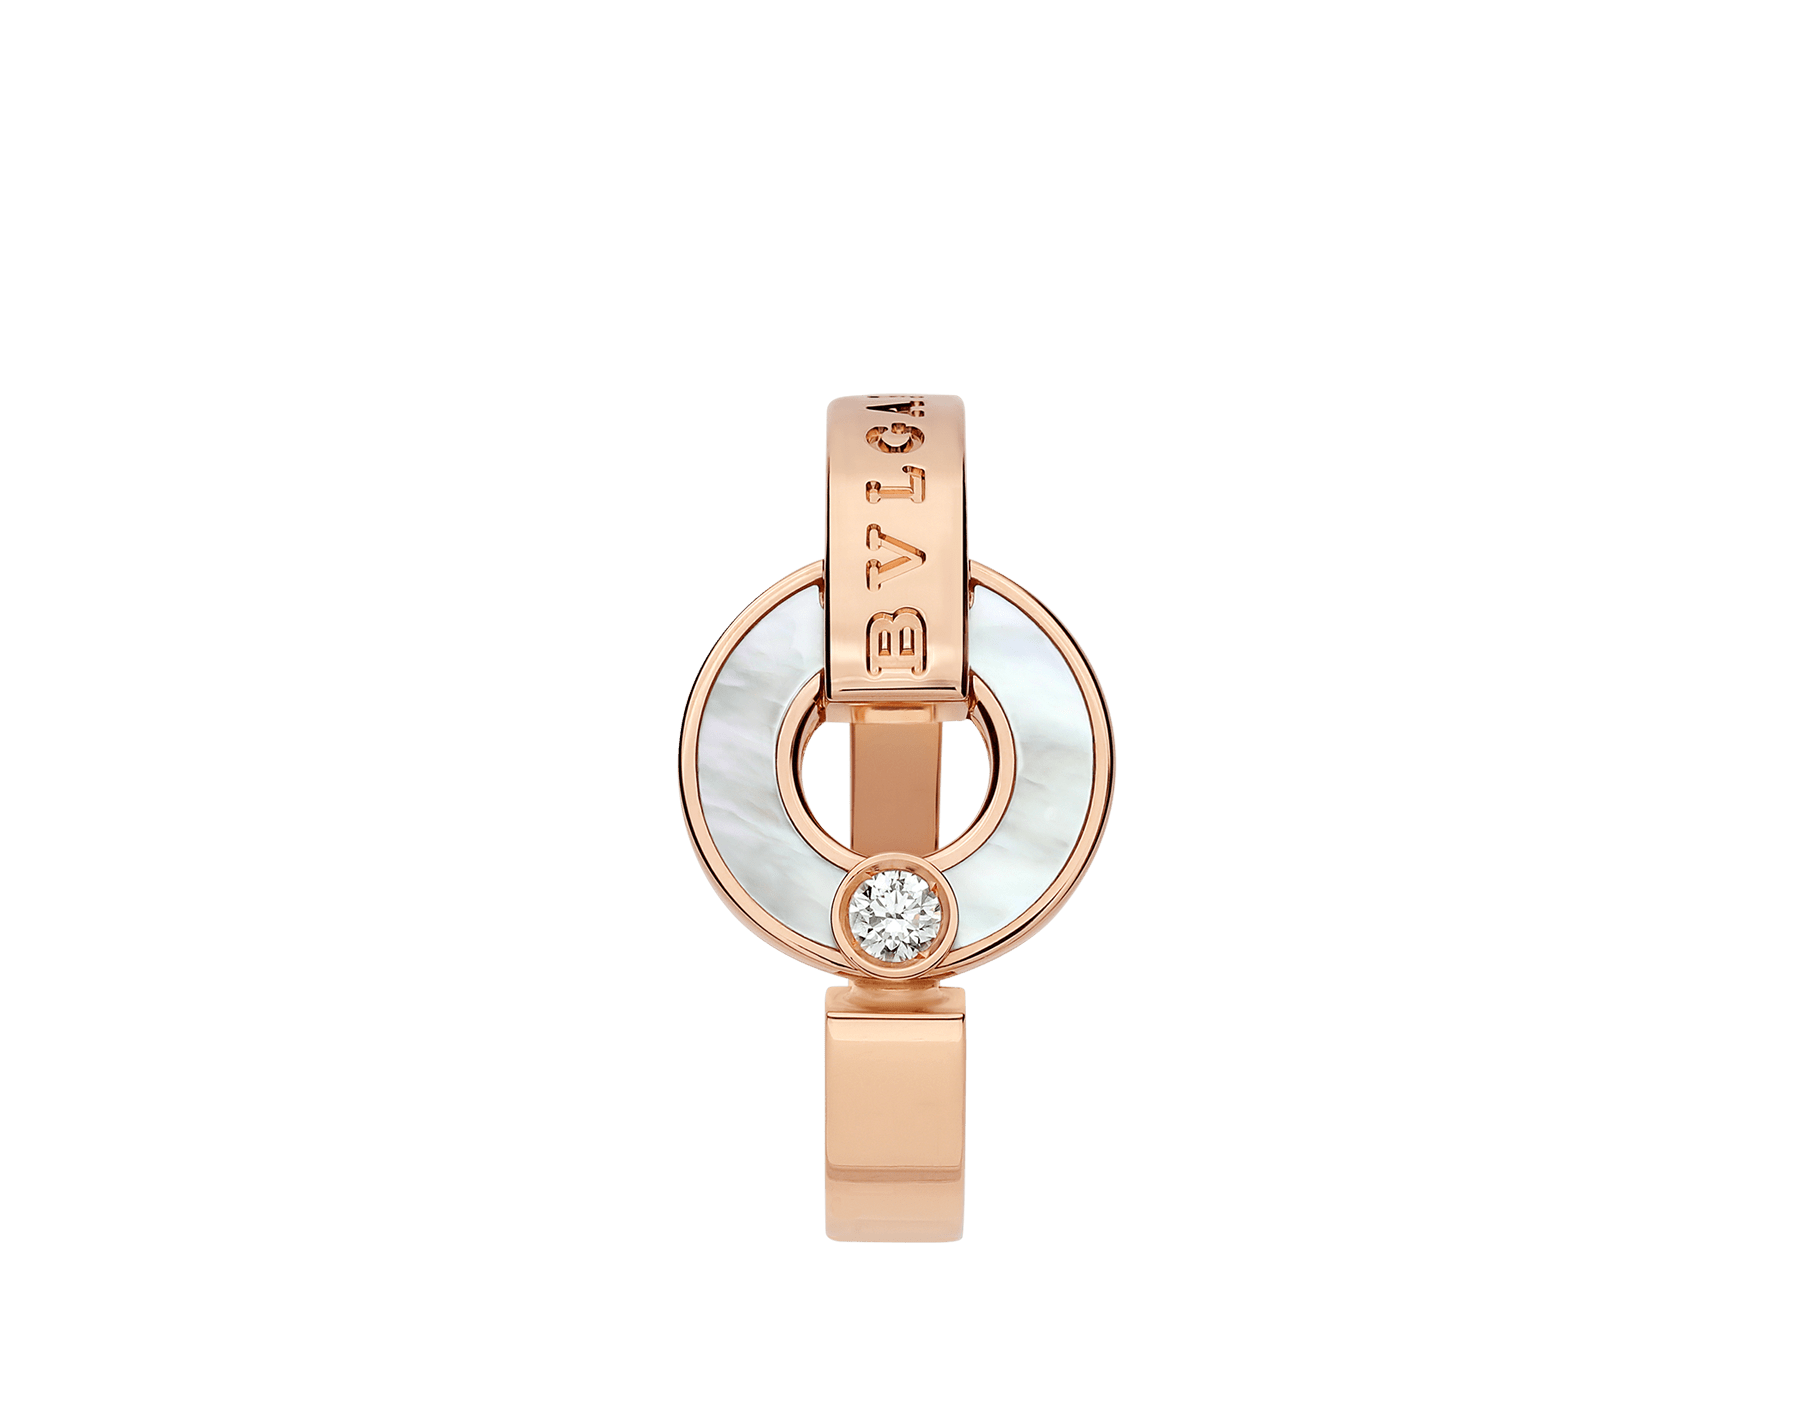 BVLGARI BVLGARI Openwork 18 kt rose gold ring set with mother-of-pearl elements and a round brilliant-cut diamond AN858947 image 2